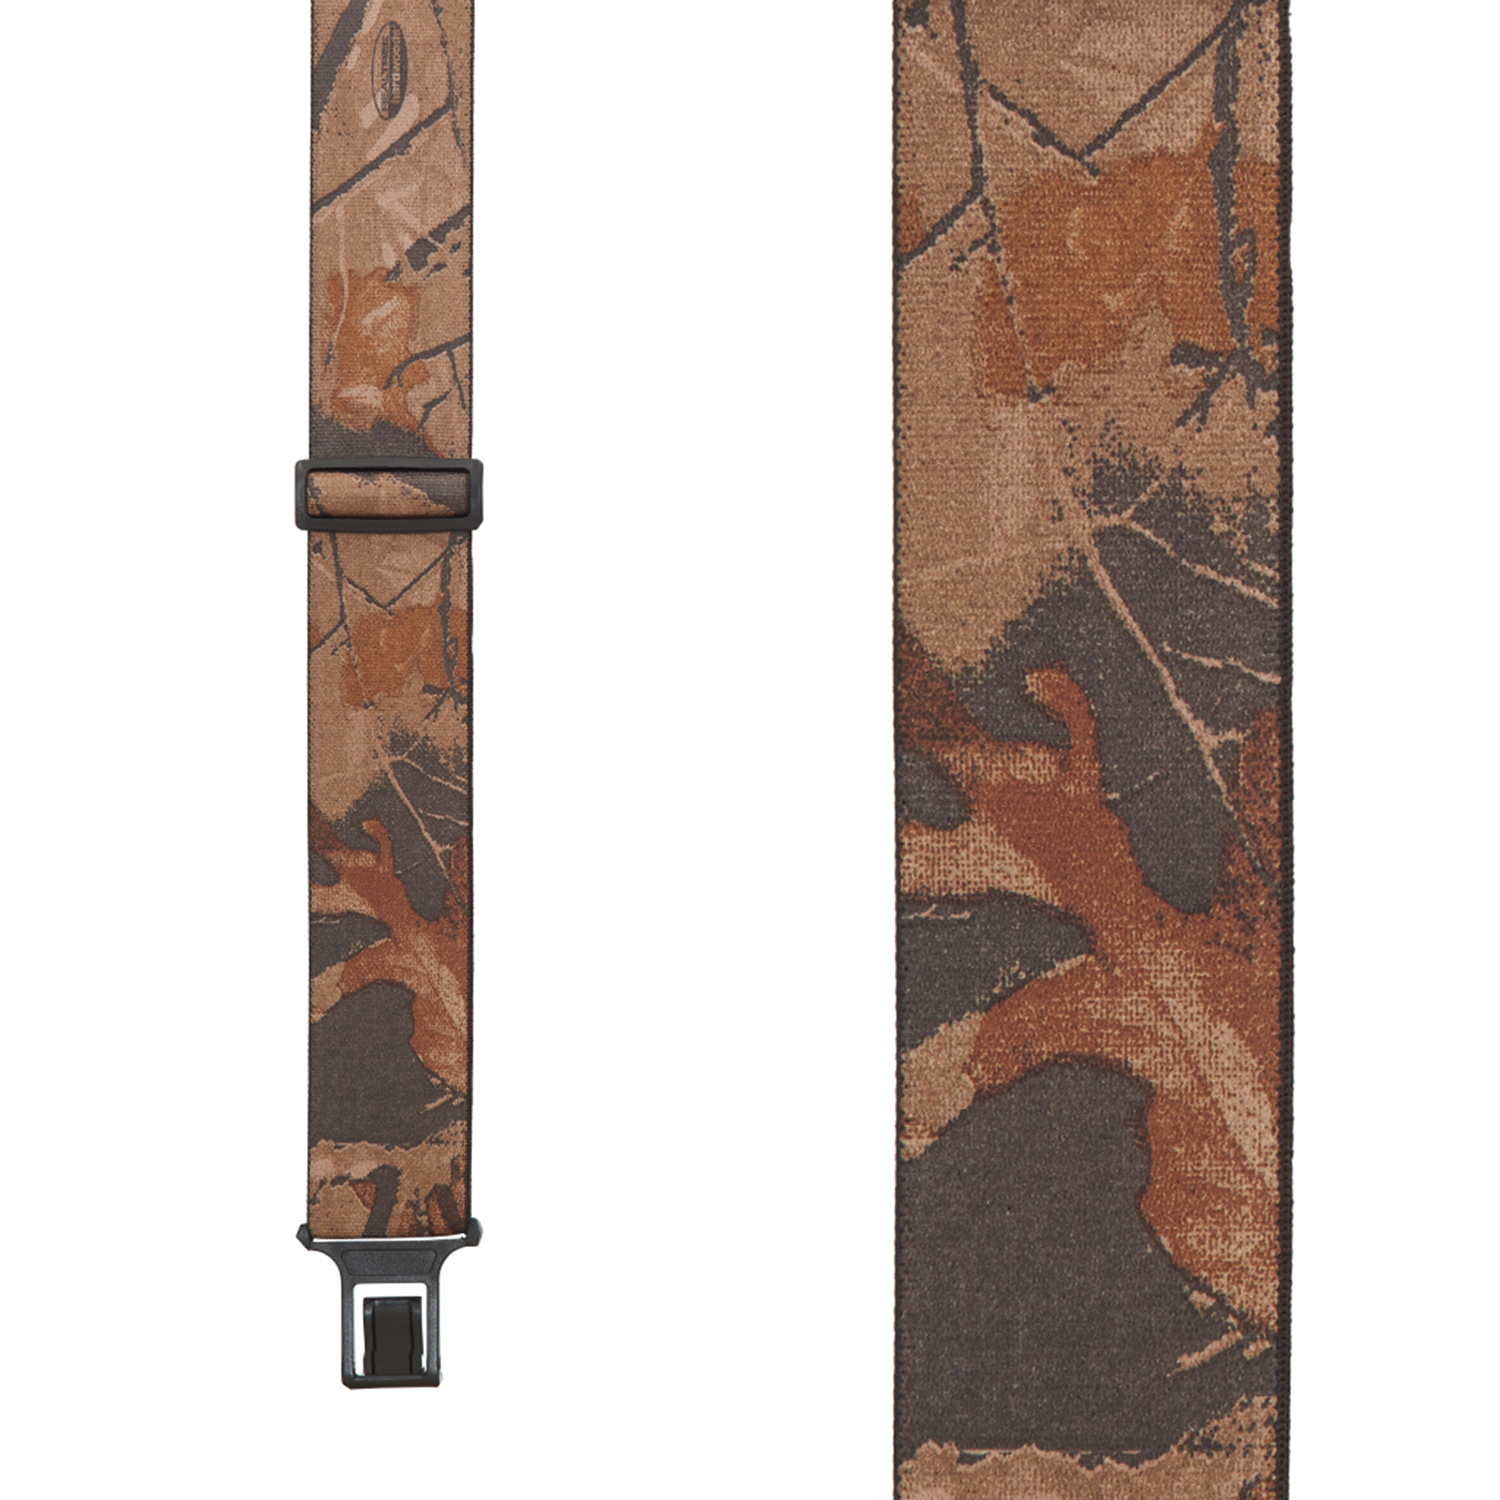 miniature 24 - Perry-Hook-On-Belt-Suspenders-The-Original-All-Colors-Regular-and-Big-amp-Tall